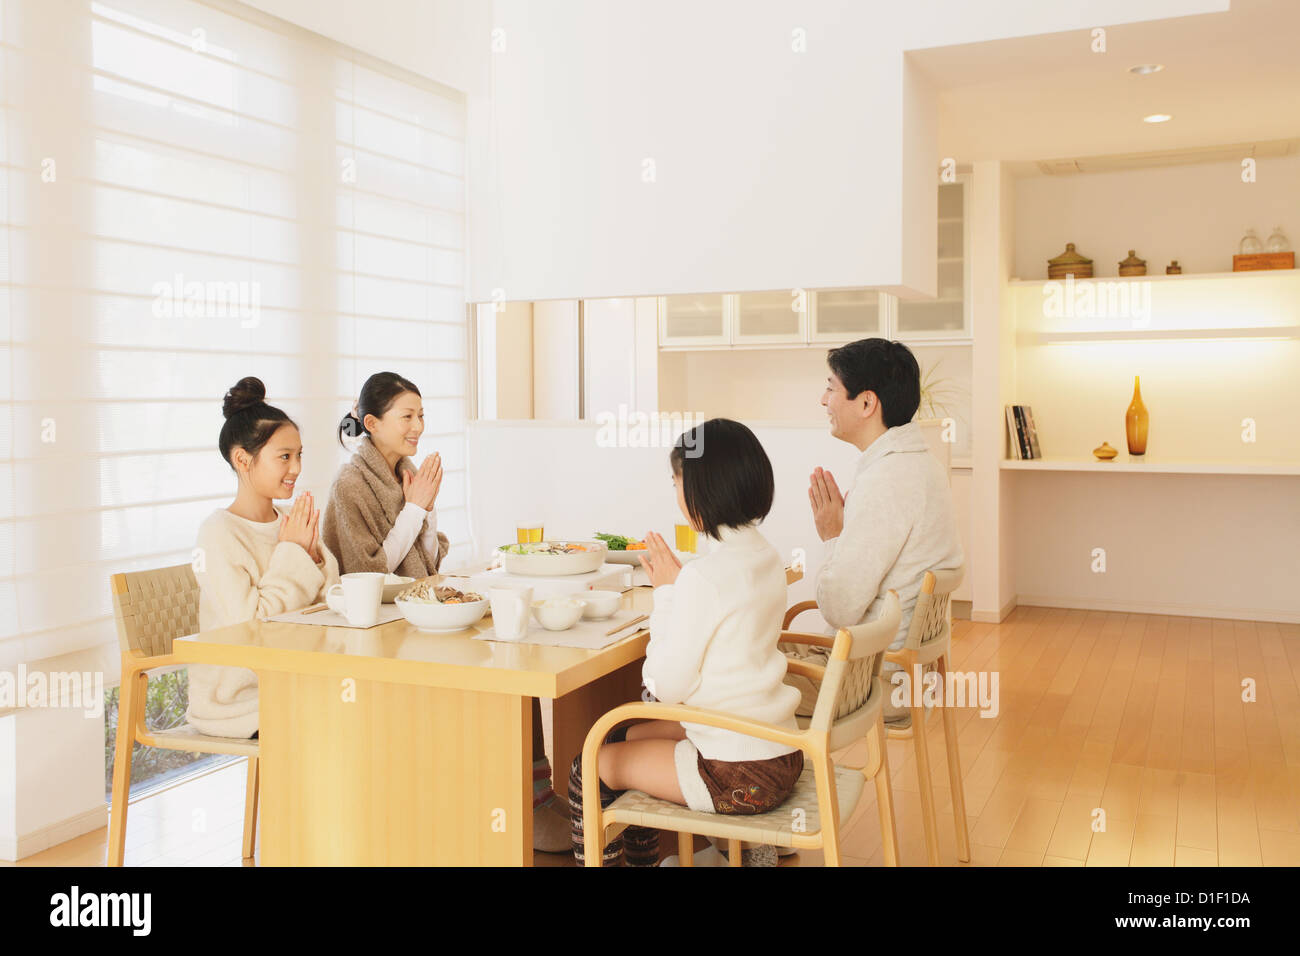 Family Of Four People Eating At The Dining Table In The Living Room